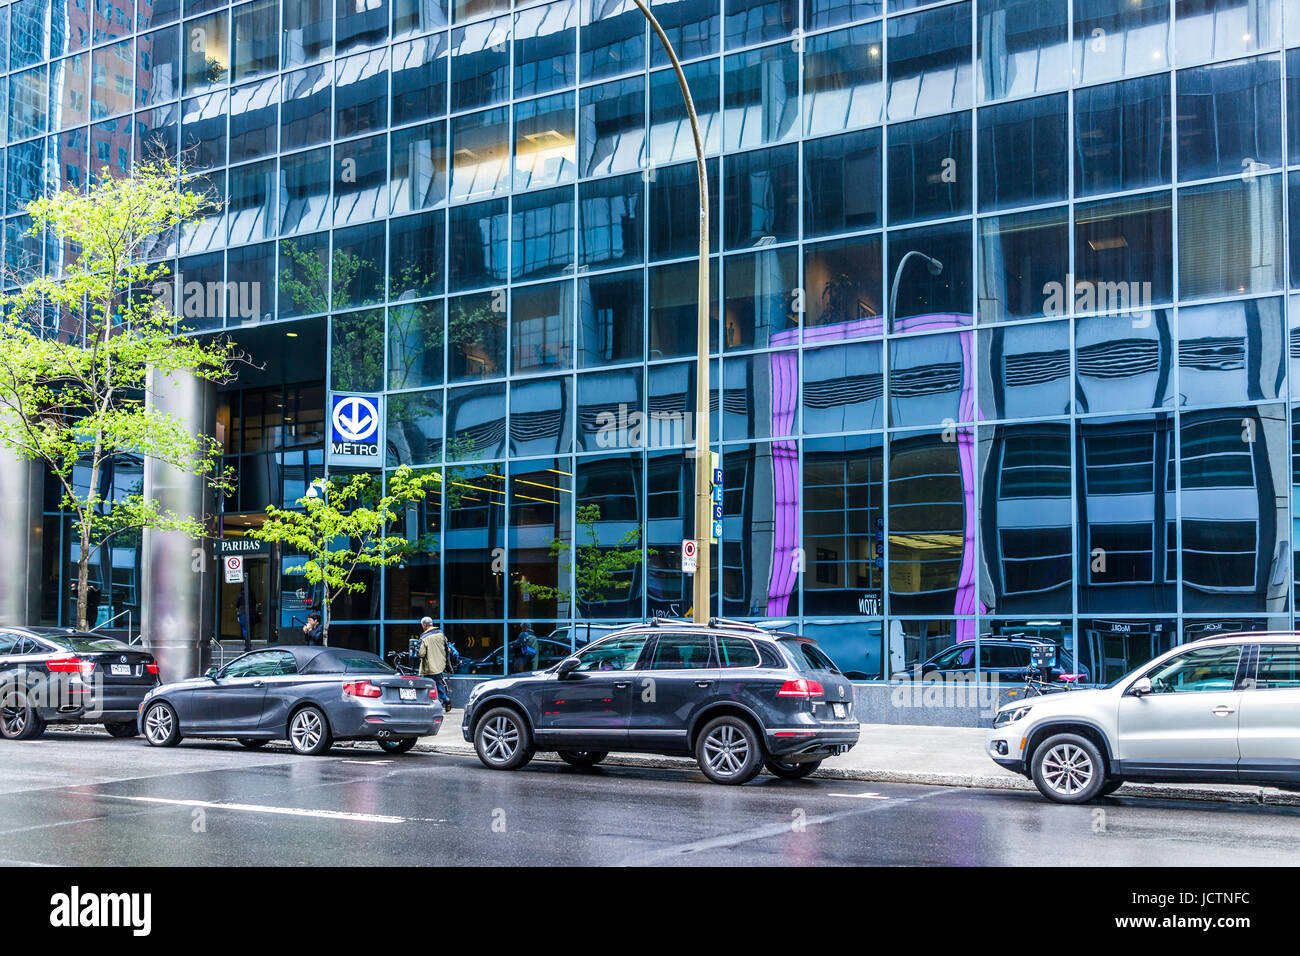 Montreal, Canada - May 26, 2017: Metro station sign in city in Undergound city in Quebec region with modern building - Stock Image